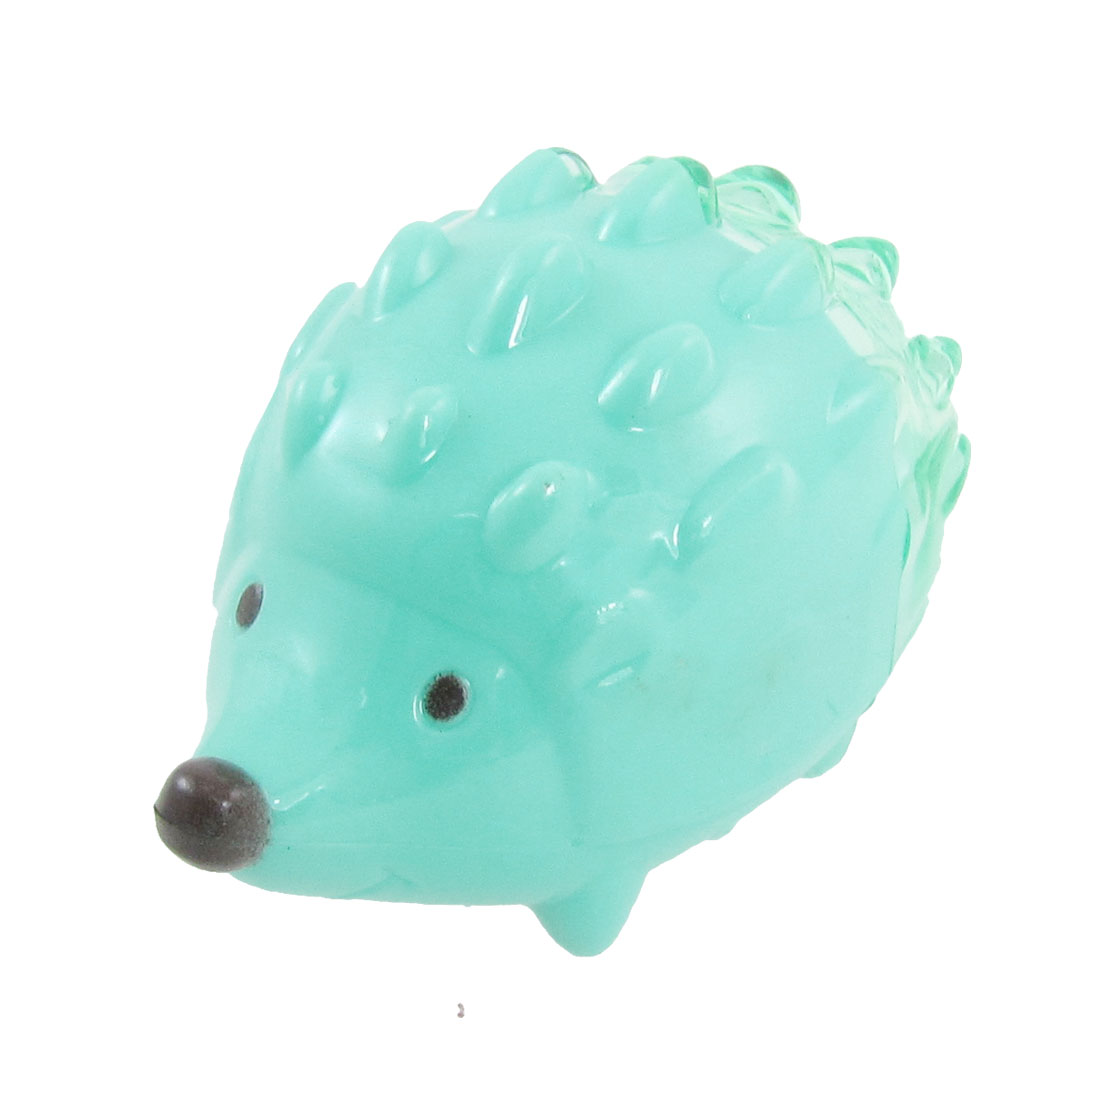 Green 8mm Dia Double Hole Hedgehog Shaped Pencil Sharpener